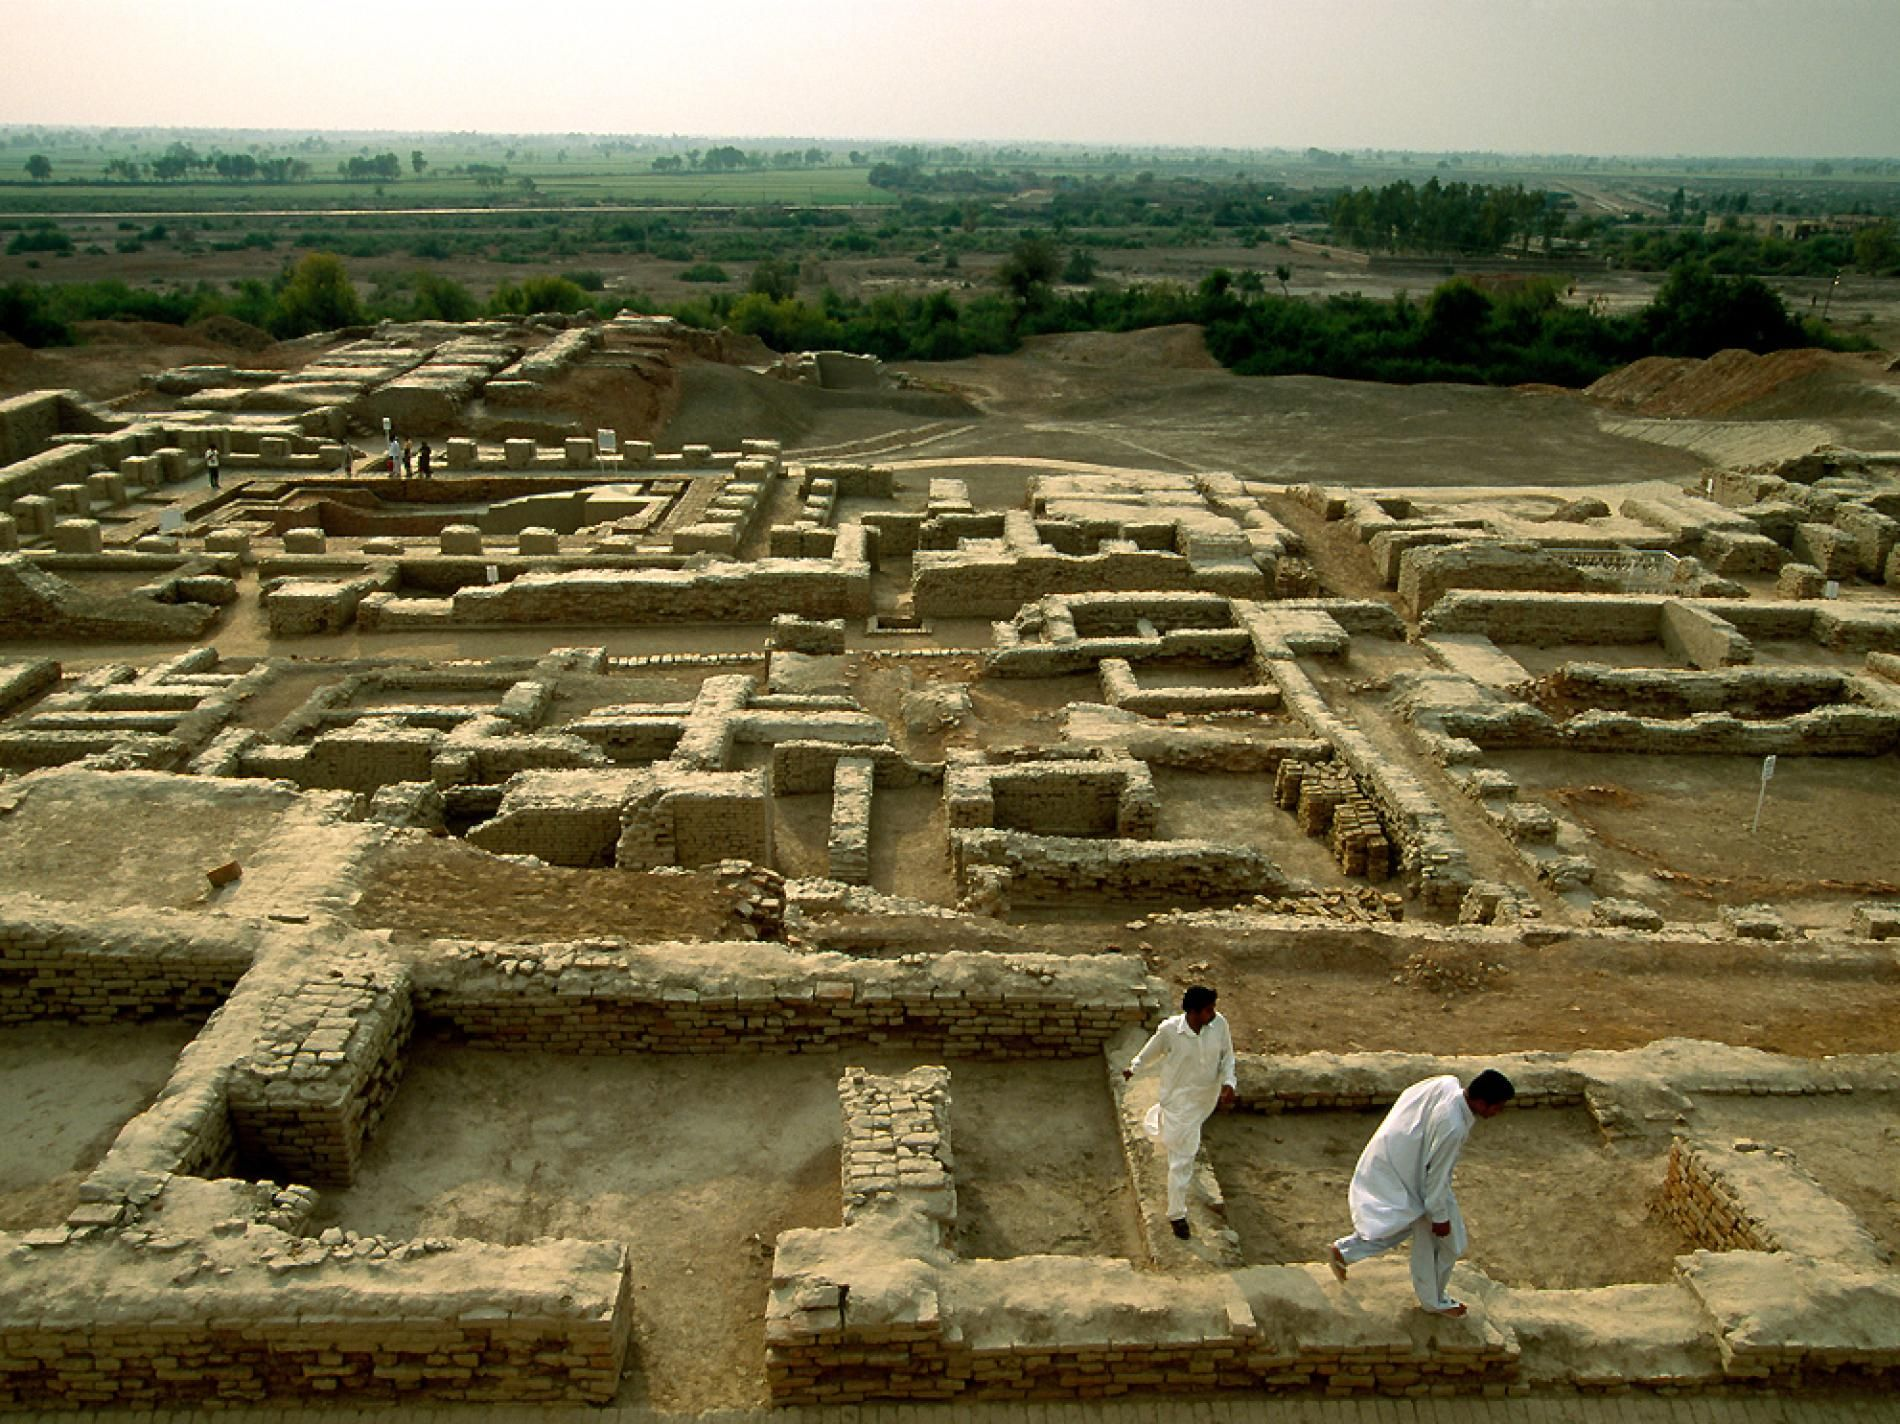 Lost City Of Mohenjo Daro Puzzles Archaeologists